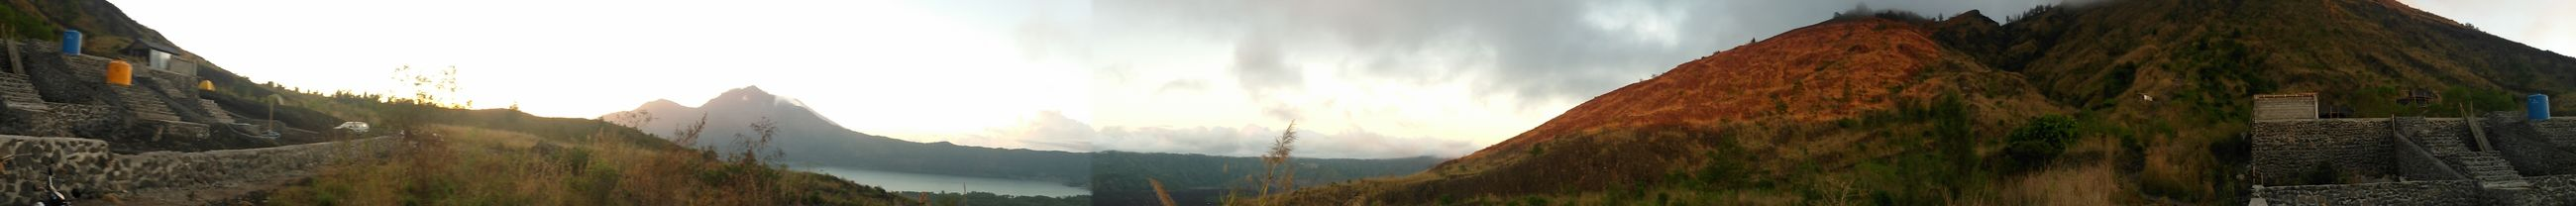 Hiking Bali, Indonesia Colored Pencil Day Mountain Nature Outdoors Panorama Panoramashot Sunrise